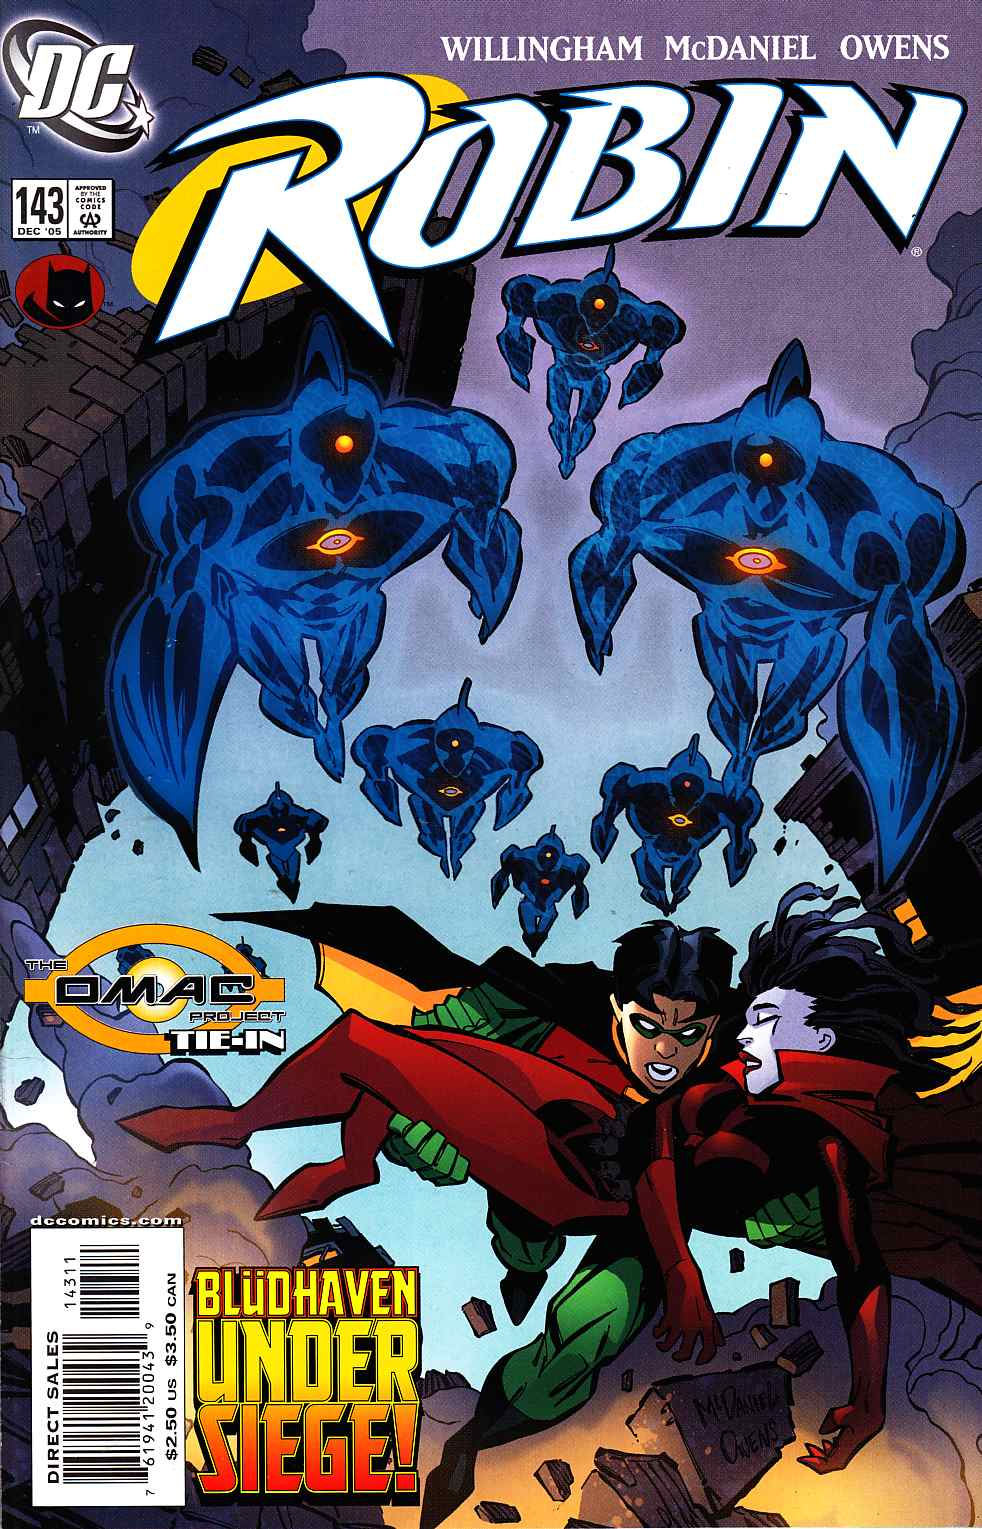 Robin #143 Dec 05 DC December 2005 Willingham mcdaniel Owens